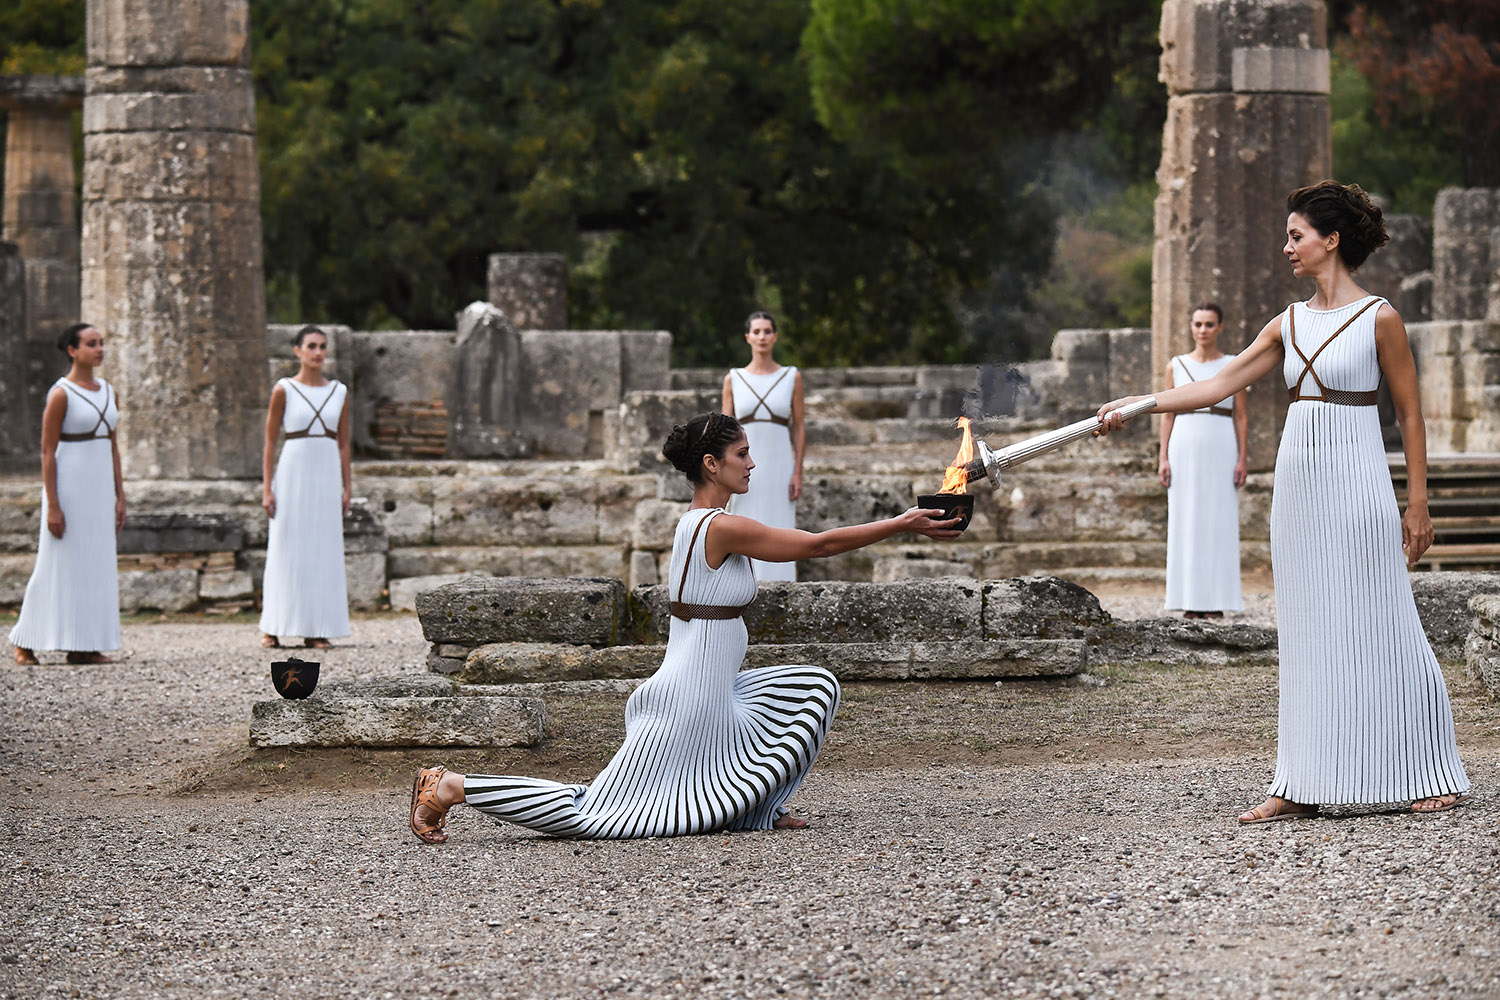 TOPSHOT - Actress Katerina Lechou (R), acting the high priestess, lights the Olympic flame at the Temple of Hera in Olympia, the sanctuary where the Olympic Games were born in 776 BC, on October 24, 2017 during the lighting ceremony of the Olympic flame for the 2018 Winter Olympics in Pyeongchang, South Korea.  The 2018 Winter Olympics will take place from February 9 until February 25, 2017. / AFP PHOTO / ARIS MESSINIS        (Photo credit should read ARIS MESSINIS/AFP/Getty Images)